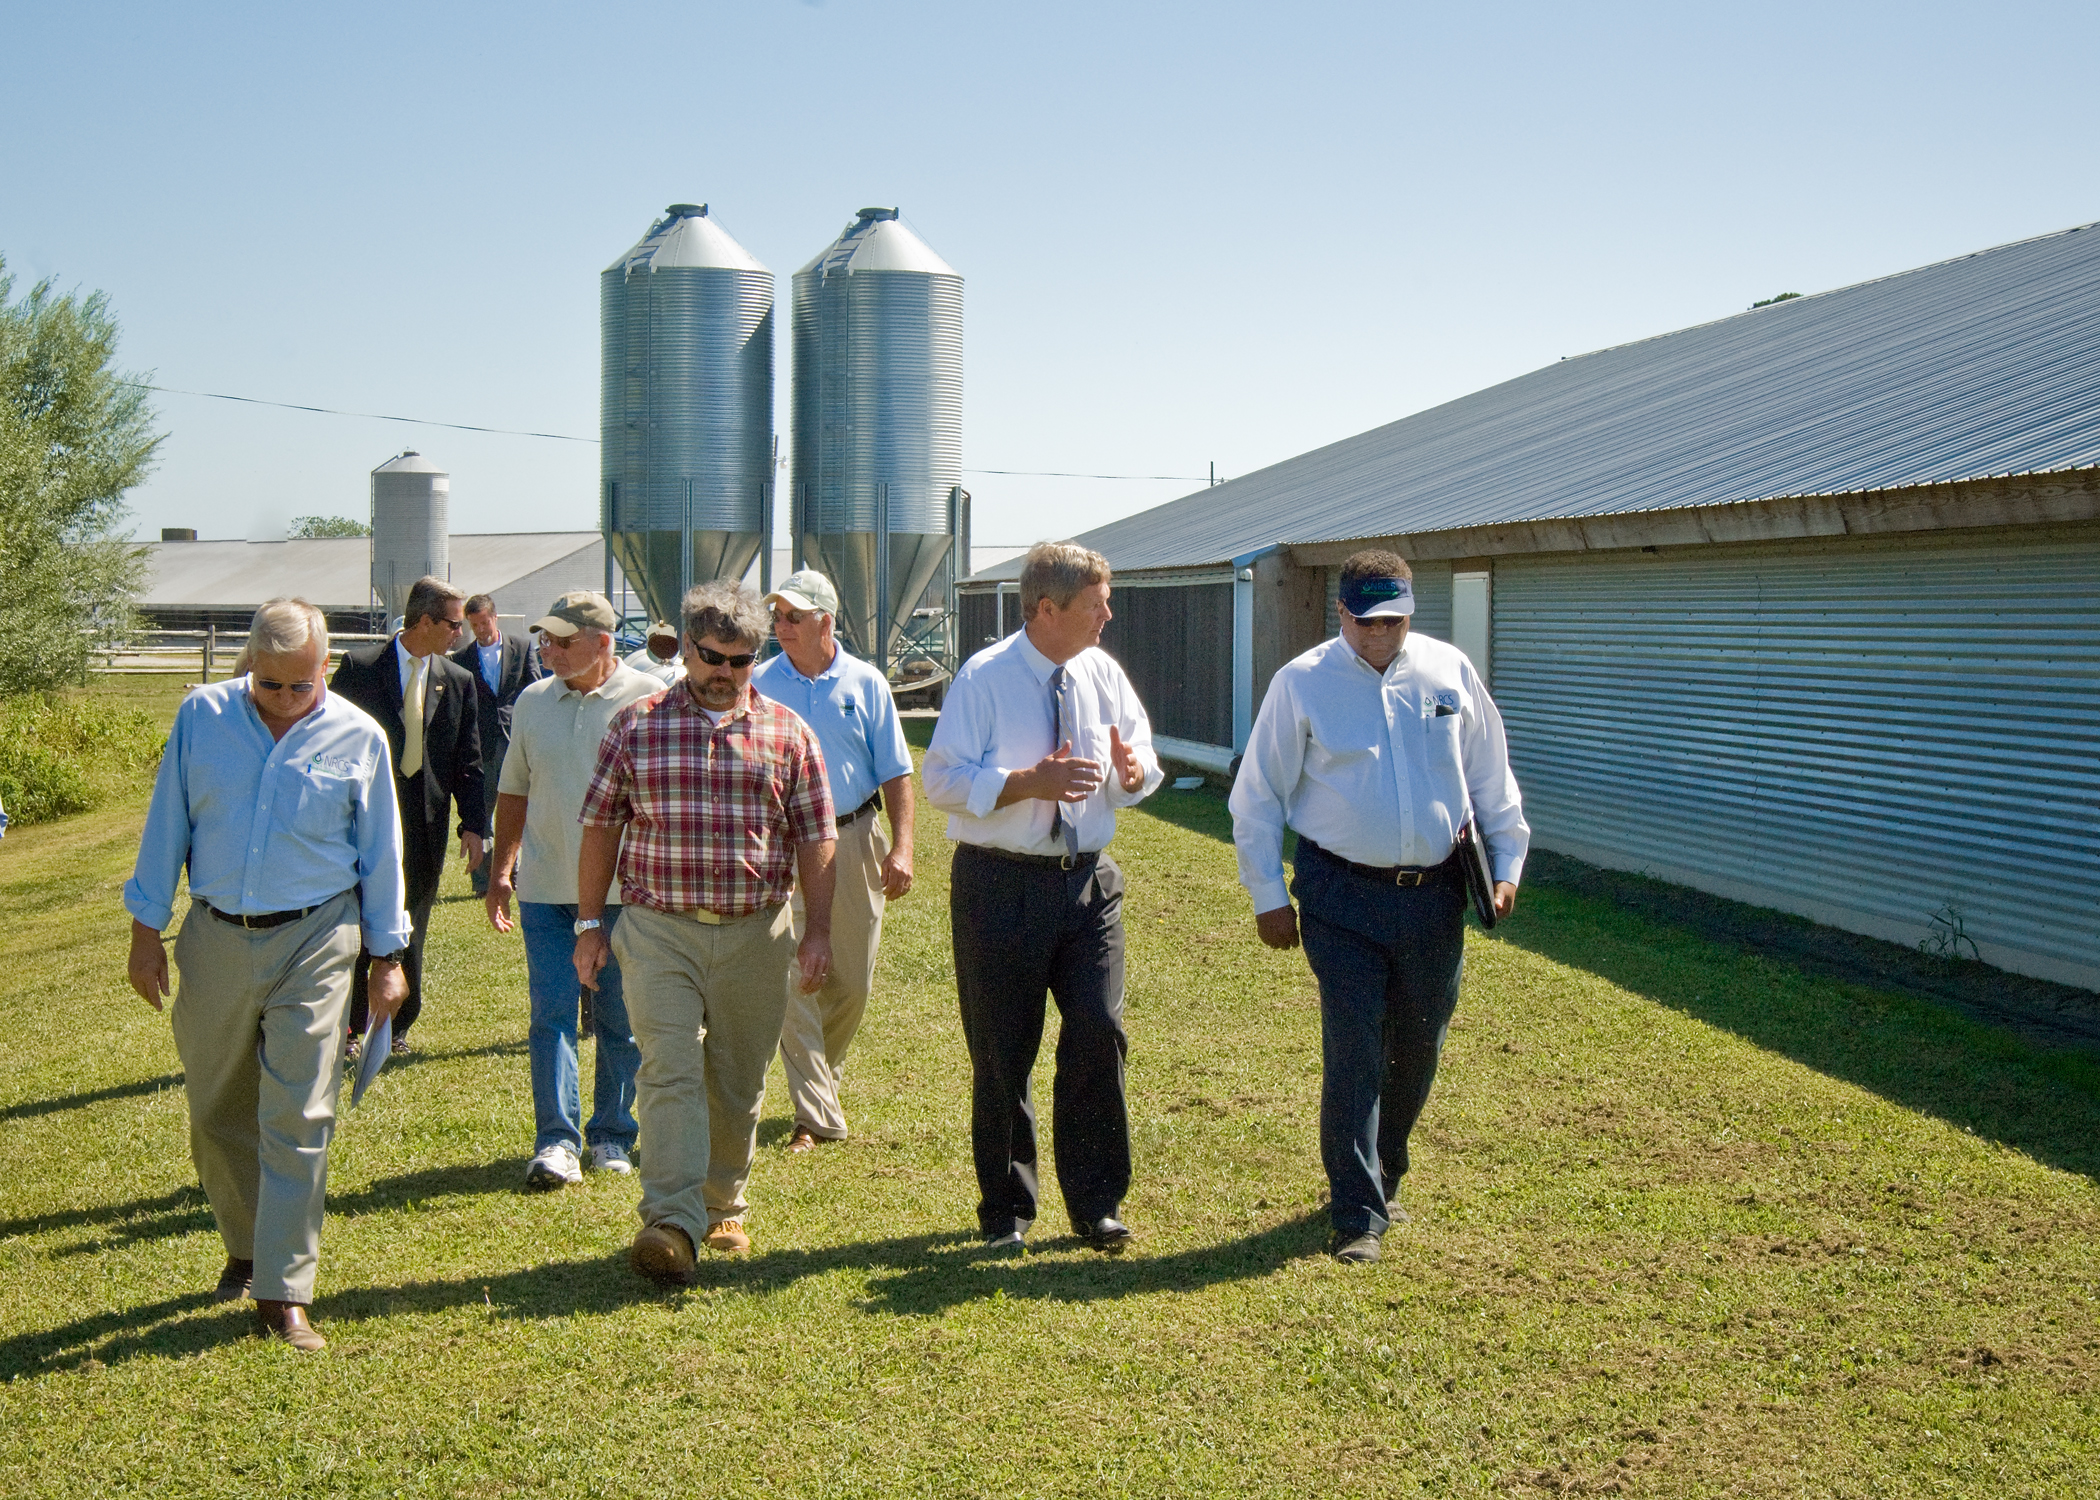 A group takes a walking tour of Double B Farms on Monday, September 20, 2010.